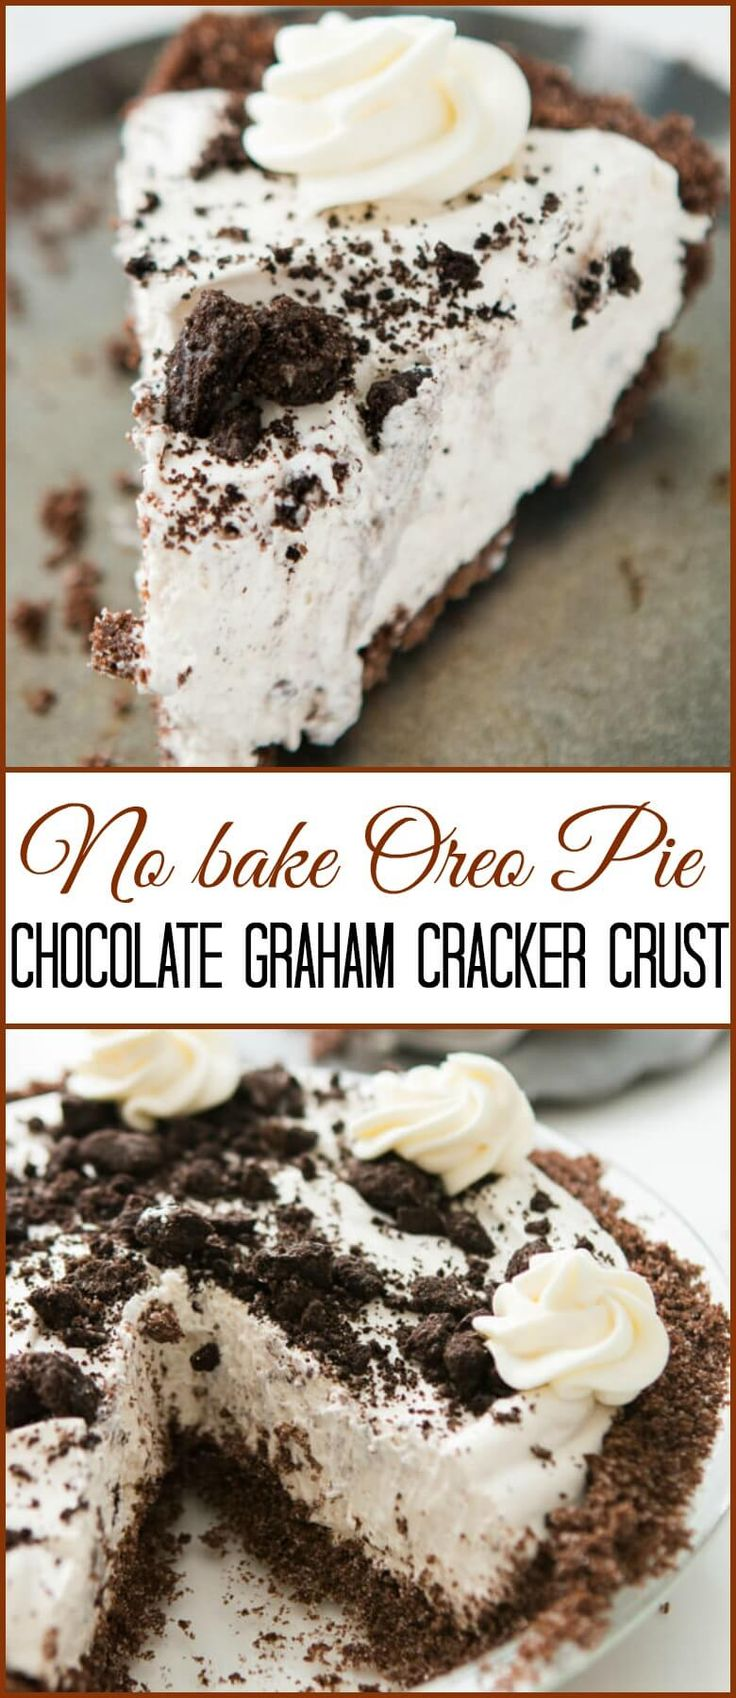 This is one of our most popular pie recipes and it's an easy pie recipe! Who wants a slice of no bake oreo pie with chocolate graham cracker crust?!